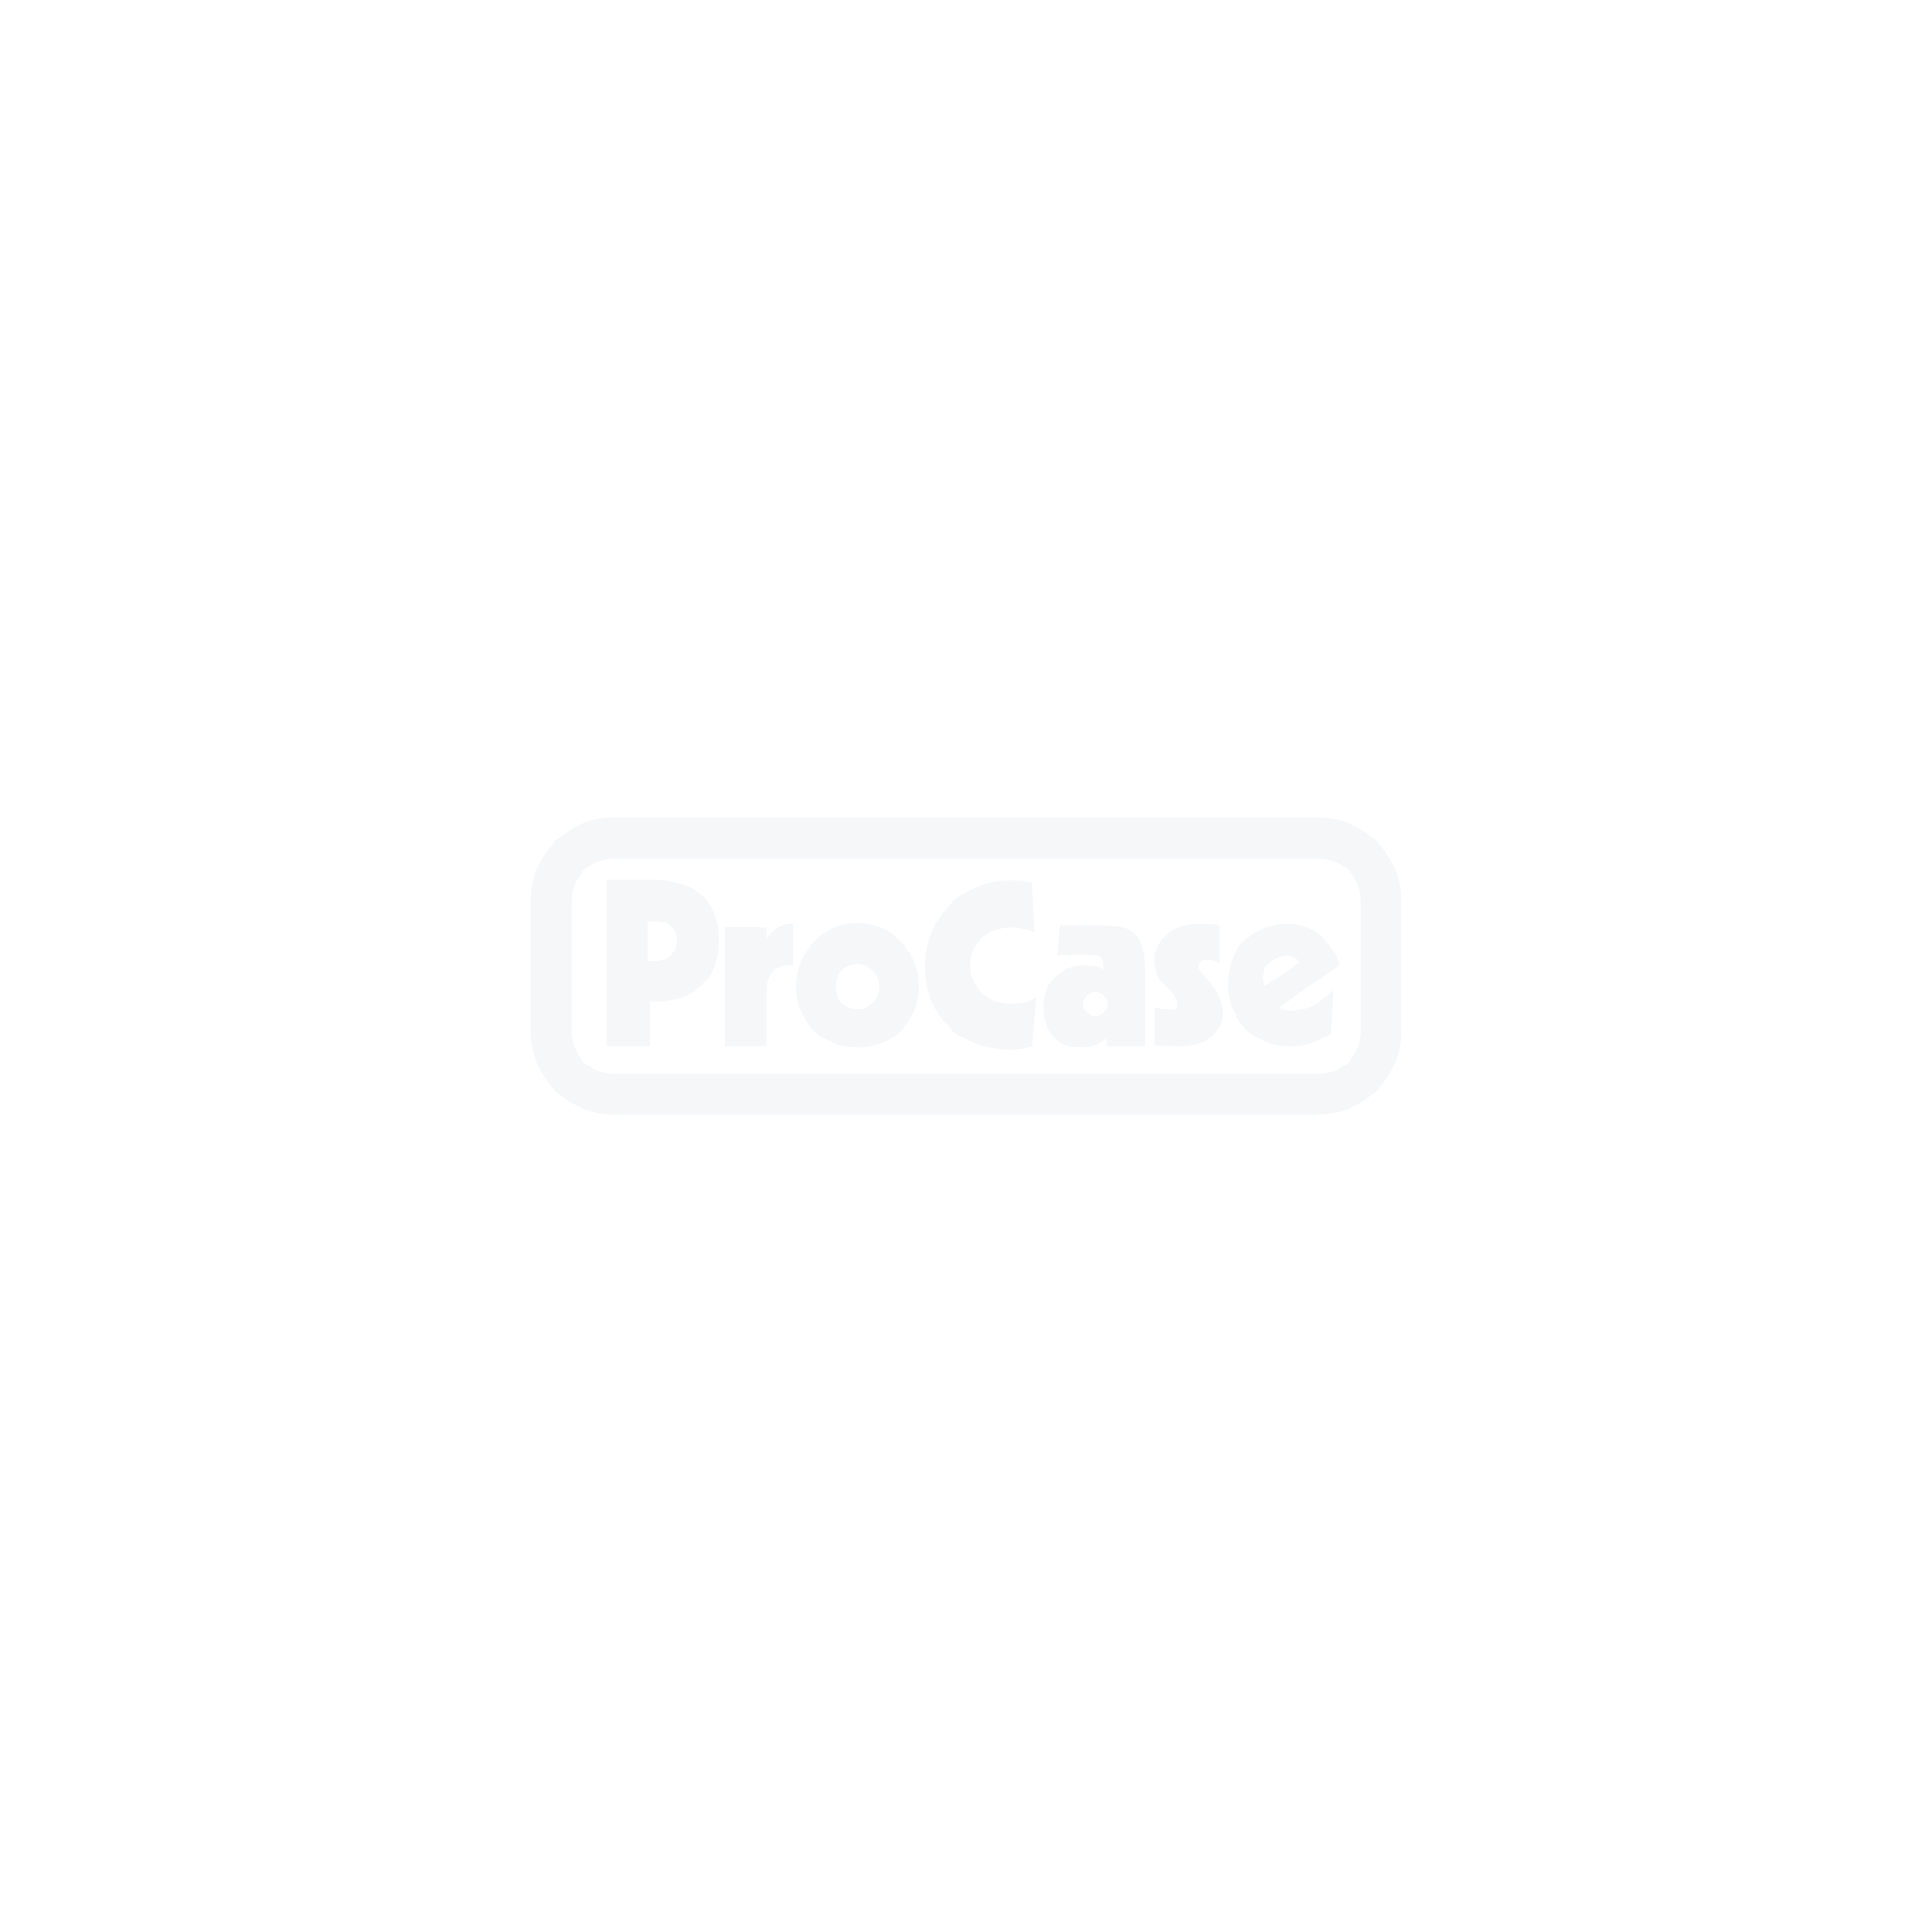 Flightcase für 2 Panasonic TH-50 PHW 6EX 2